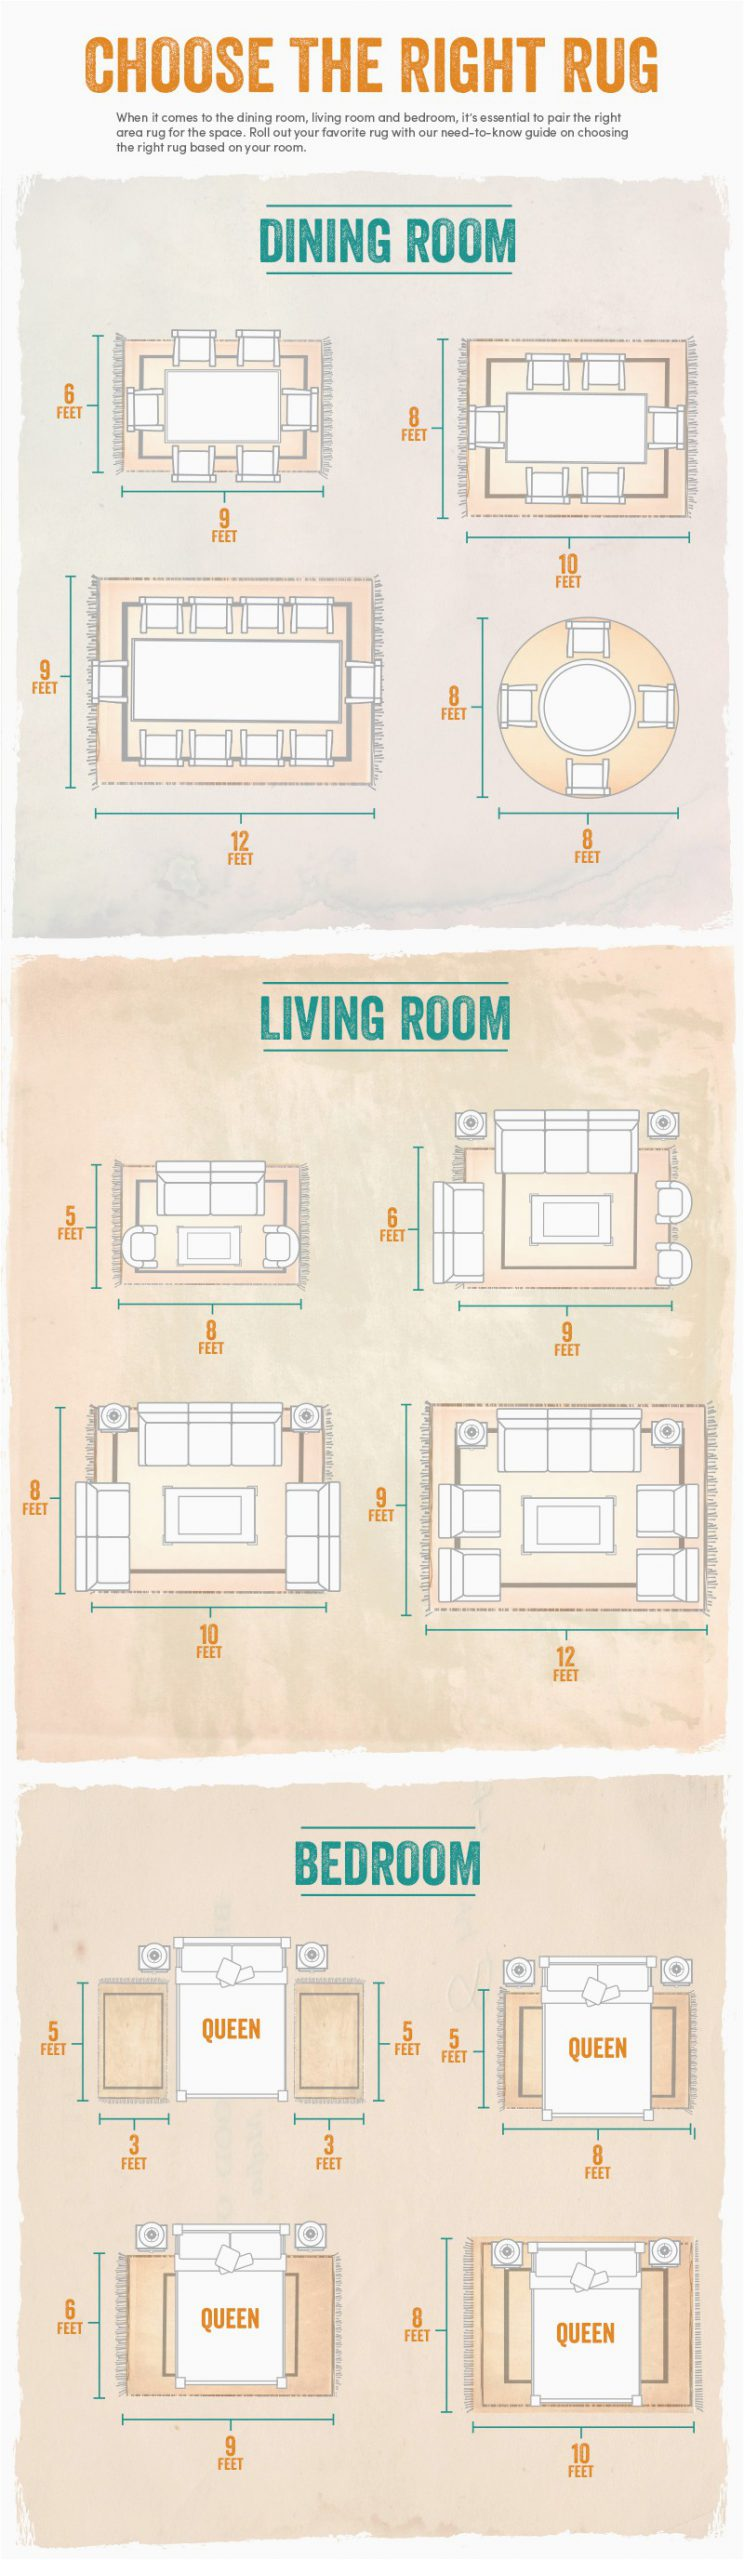 Placing area Rug In Living Room How to Choose the Right Type area Rug Carpet